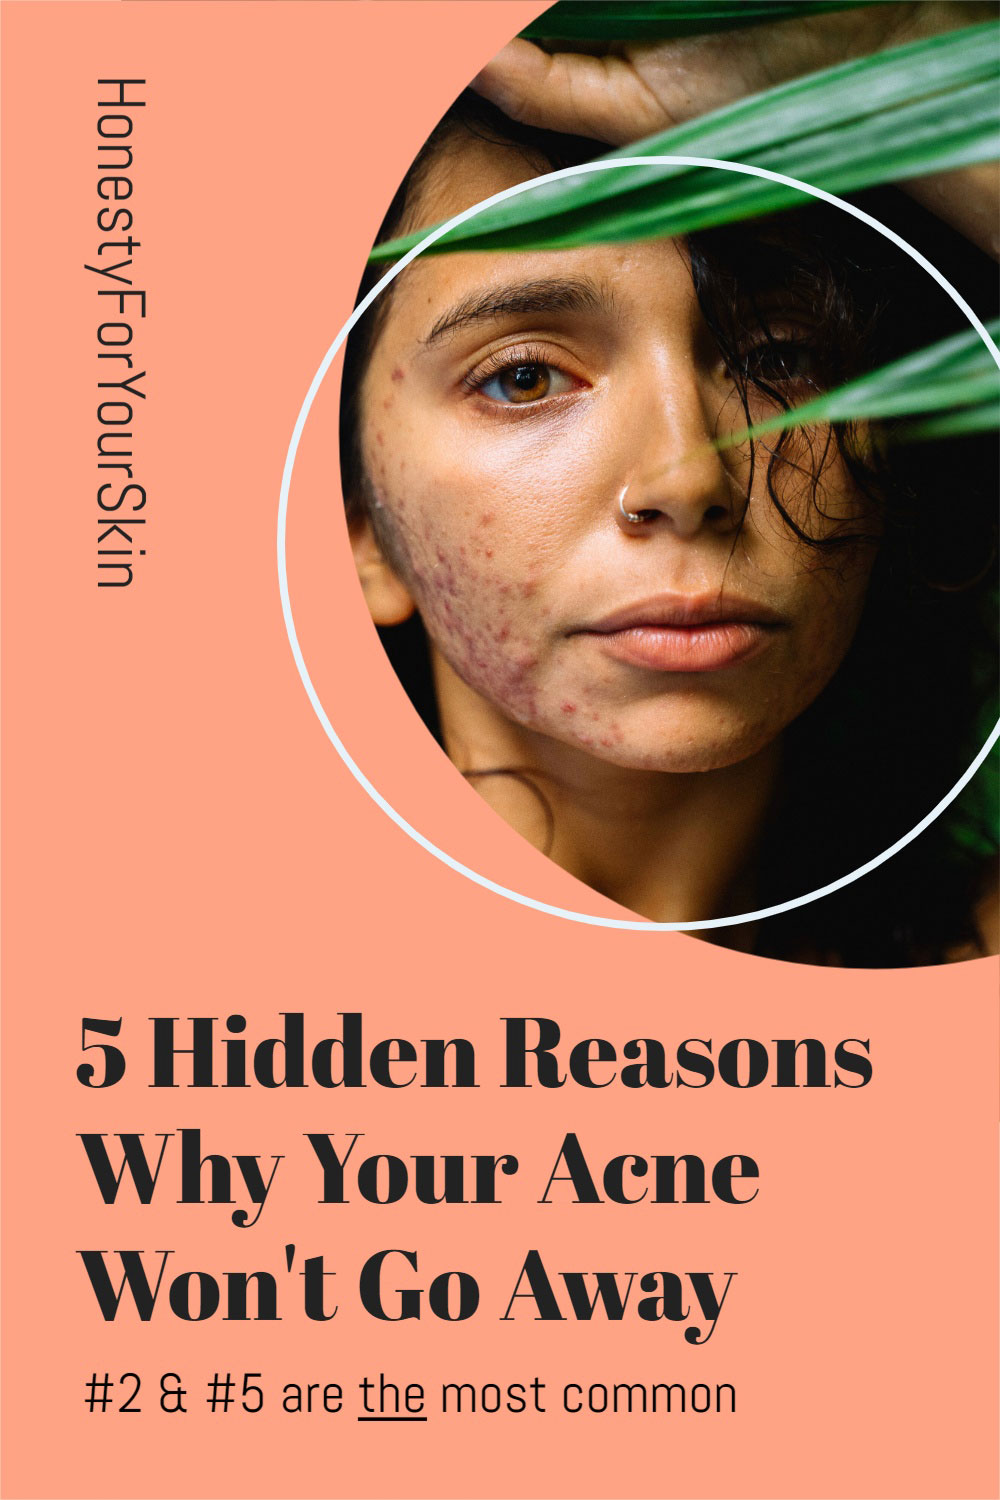 I get this first hand. How heart-wrenching it feels when acne won't go away. These are the 5 most common and science-supported reasons why.